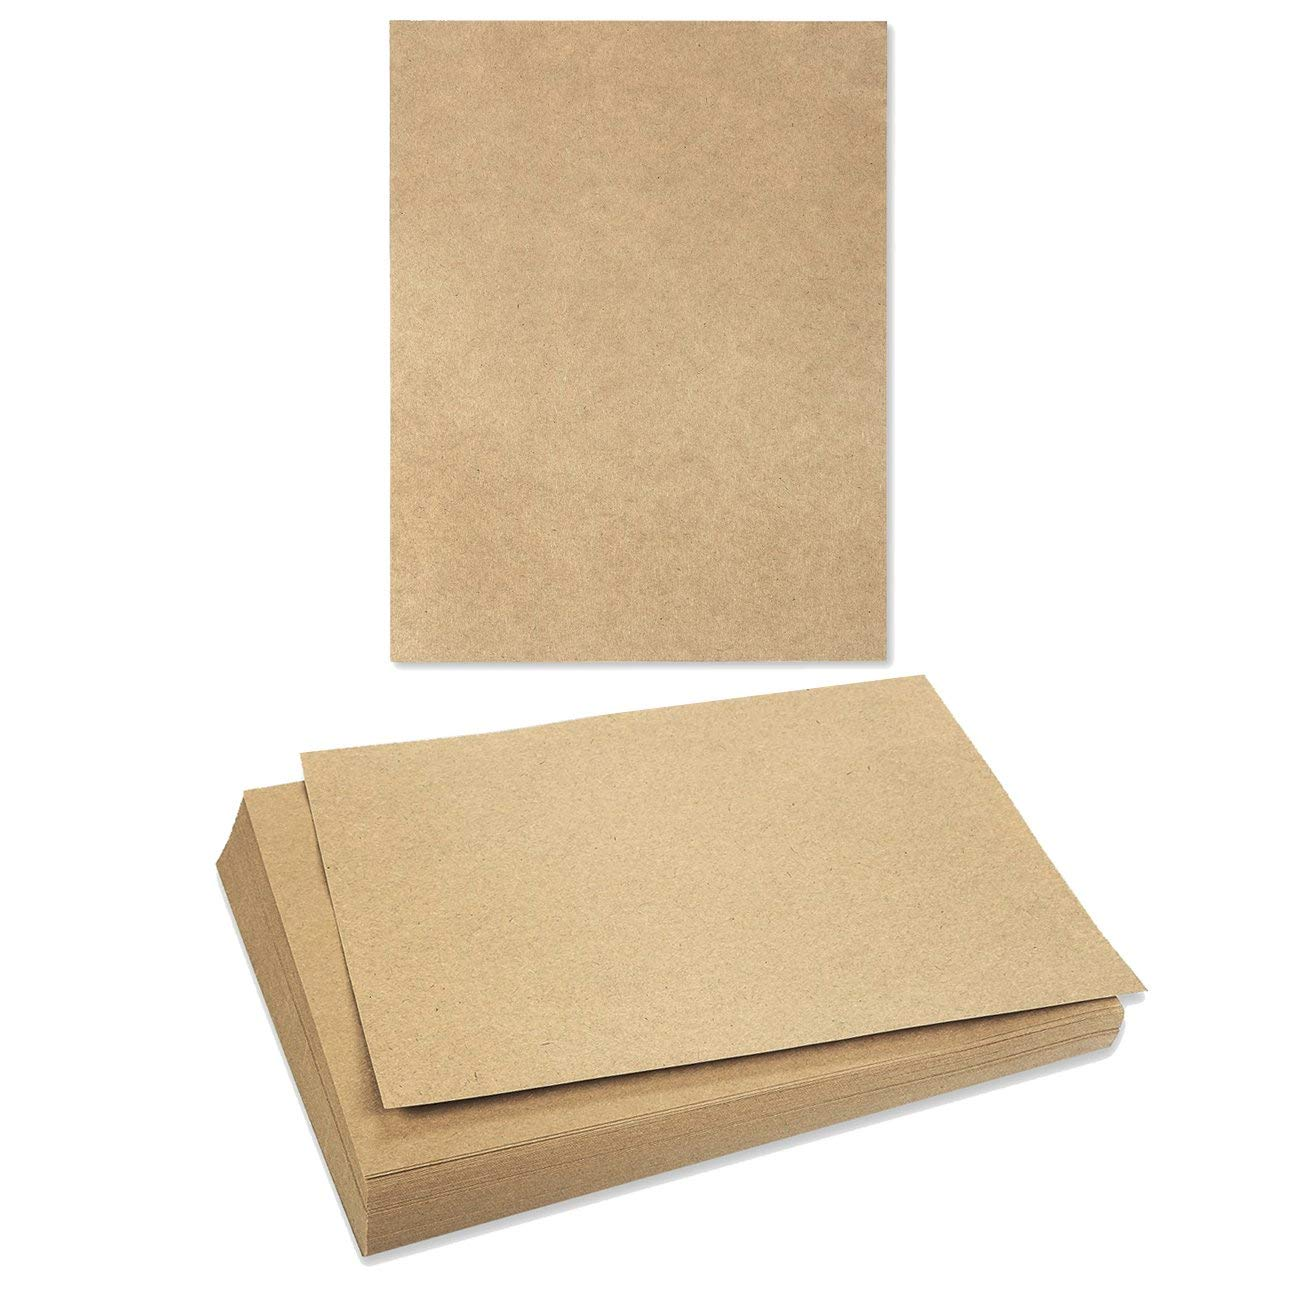 Brown Kraft Paper - 96-Pack Letter Sized Stationery Paper, 120GSM, Perfect for Arts, Crafts, and Office Use, 8.5 x 11 Inches